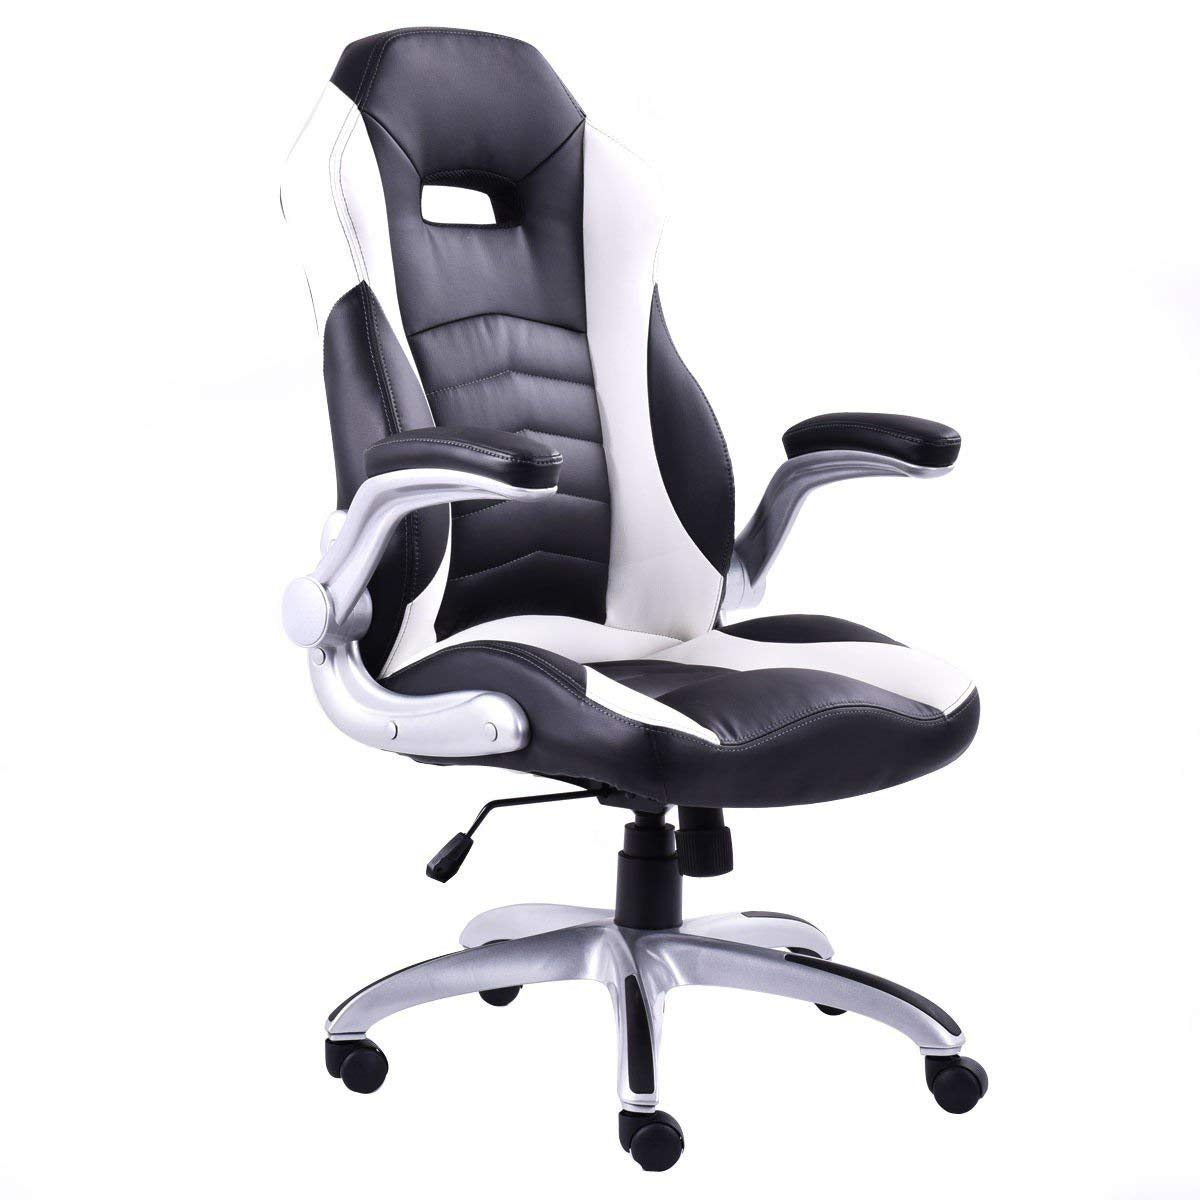 Svitlife White Executive Racing Style Bucket Seat Gaming Chair Office Leather Race New White Home Work